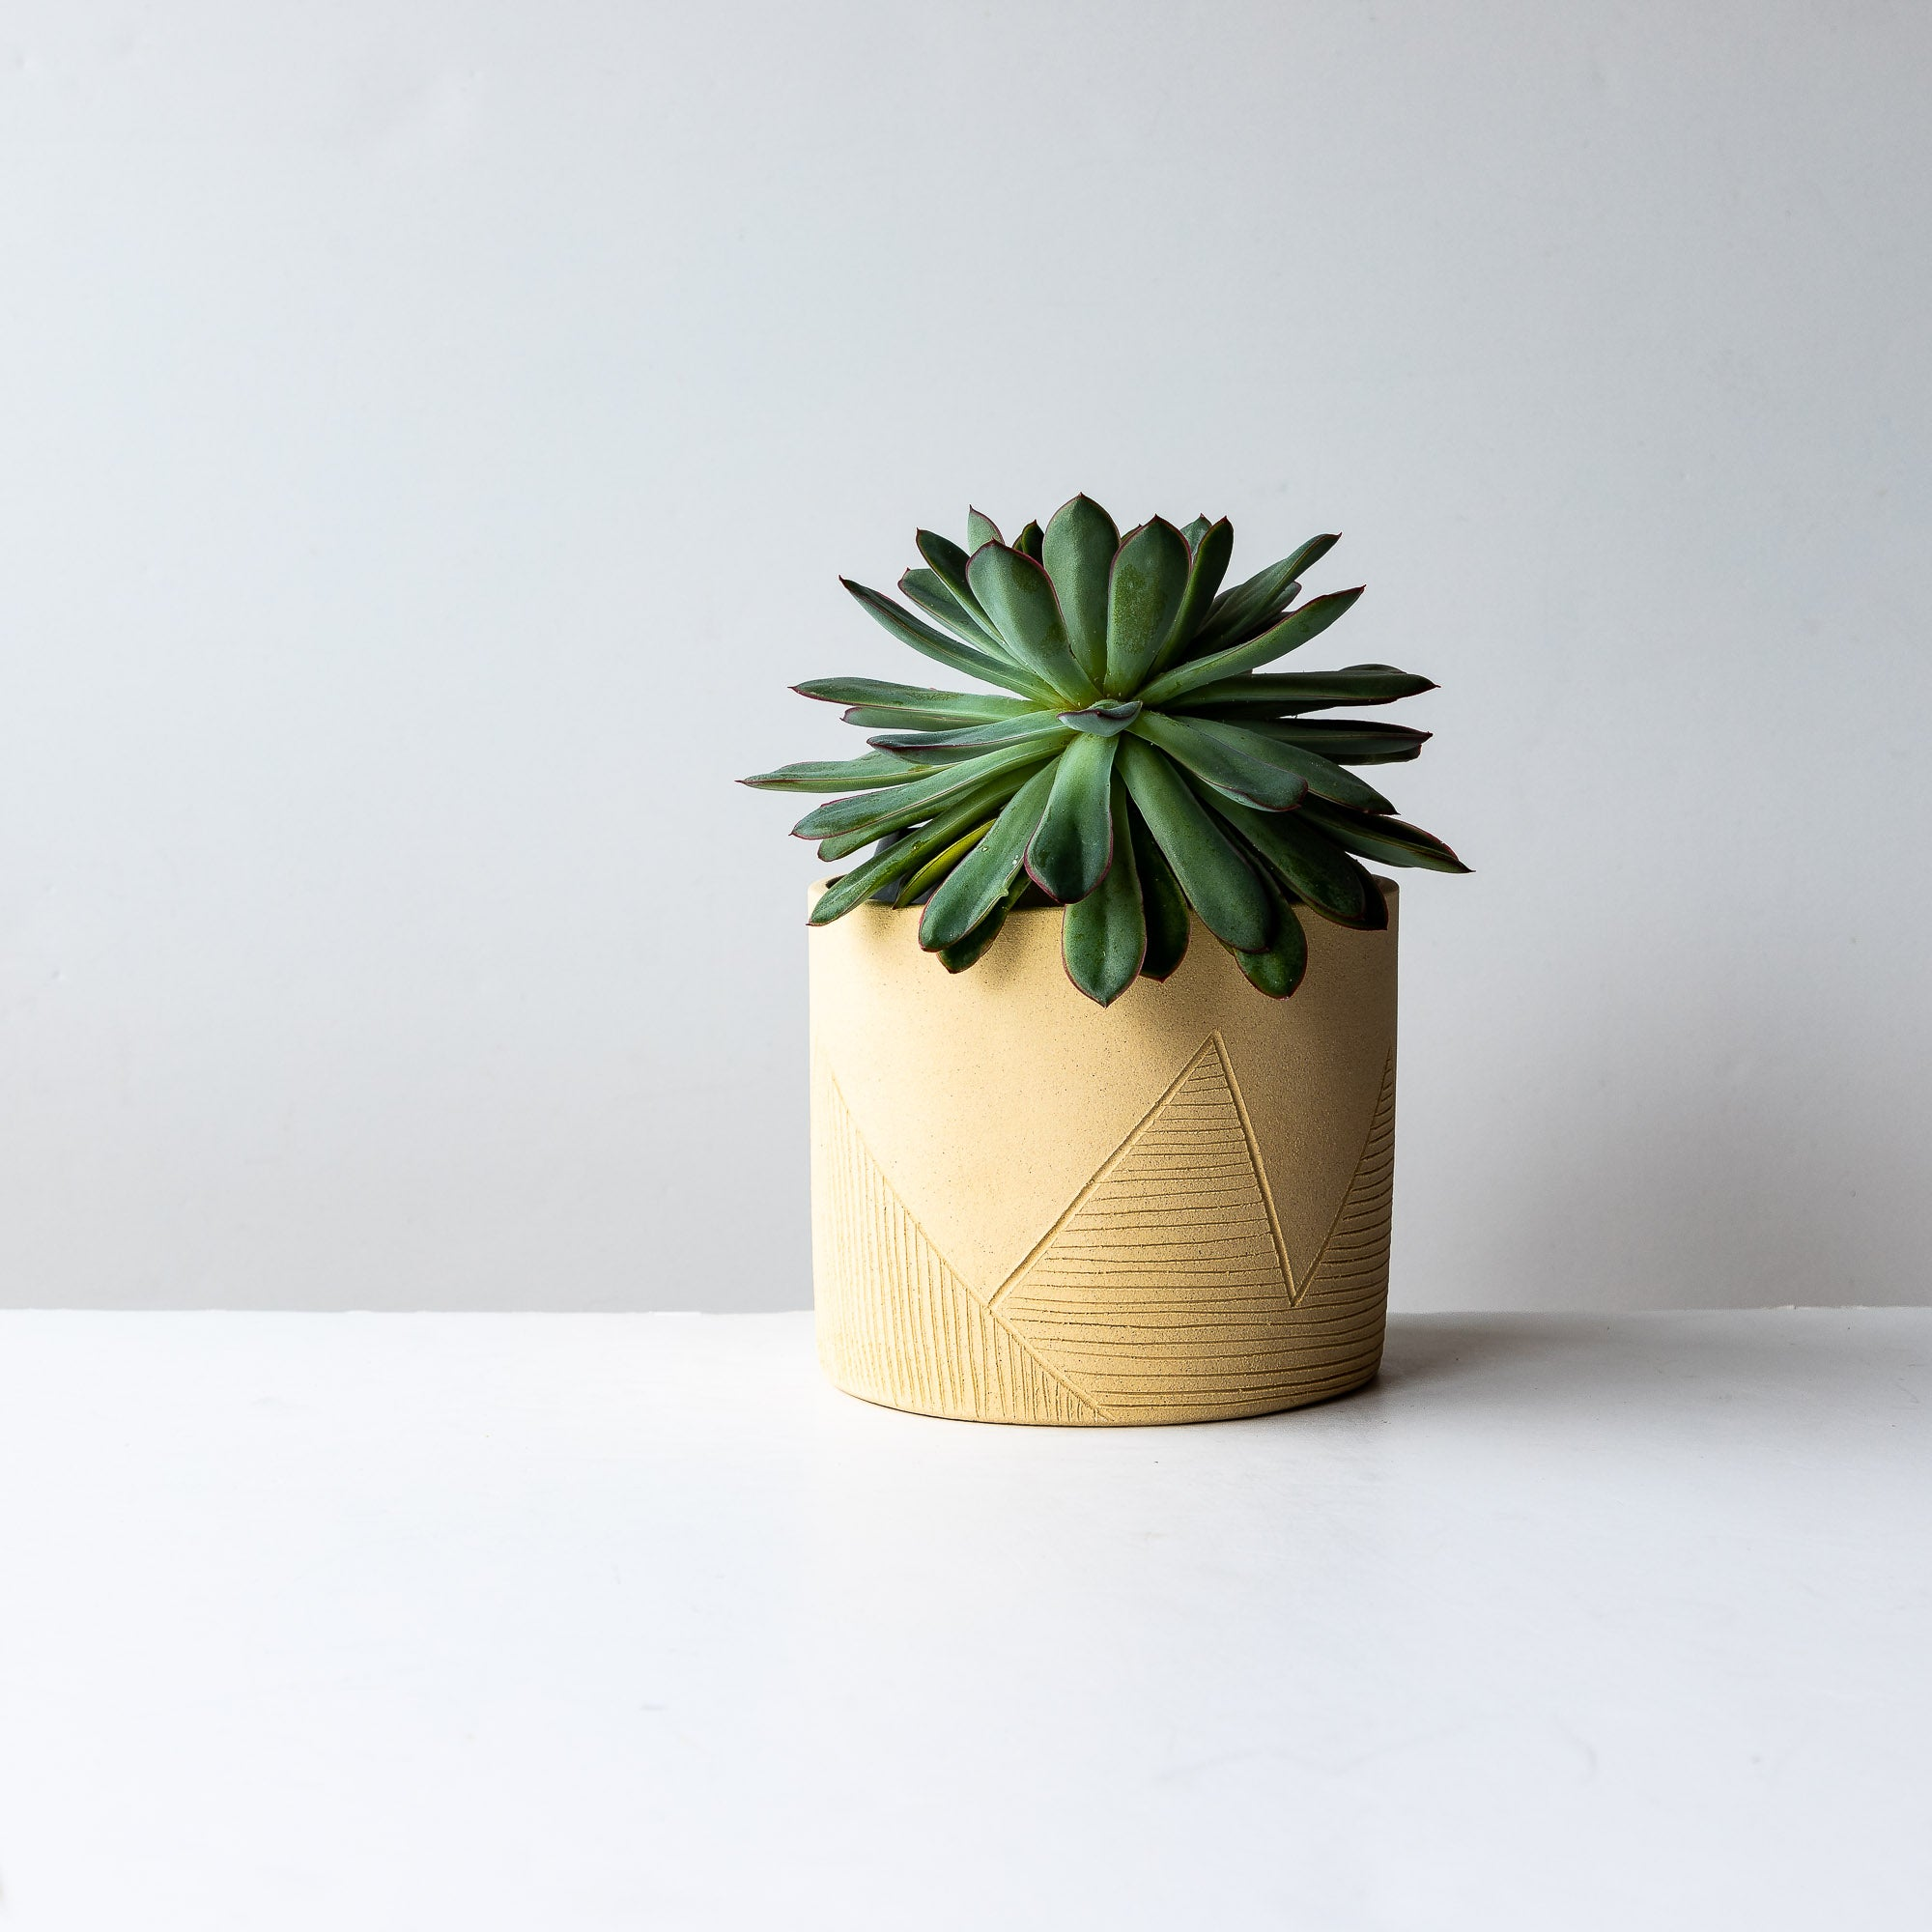 Sonora - Pot / Cache pot in Unglazed Engraved Stoneware Shown with Cacti - Sold by Chic & Basta